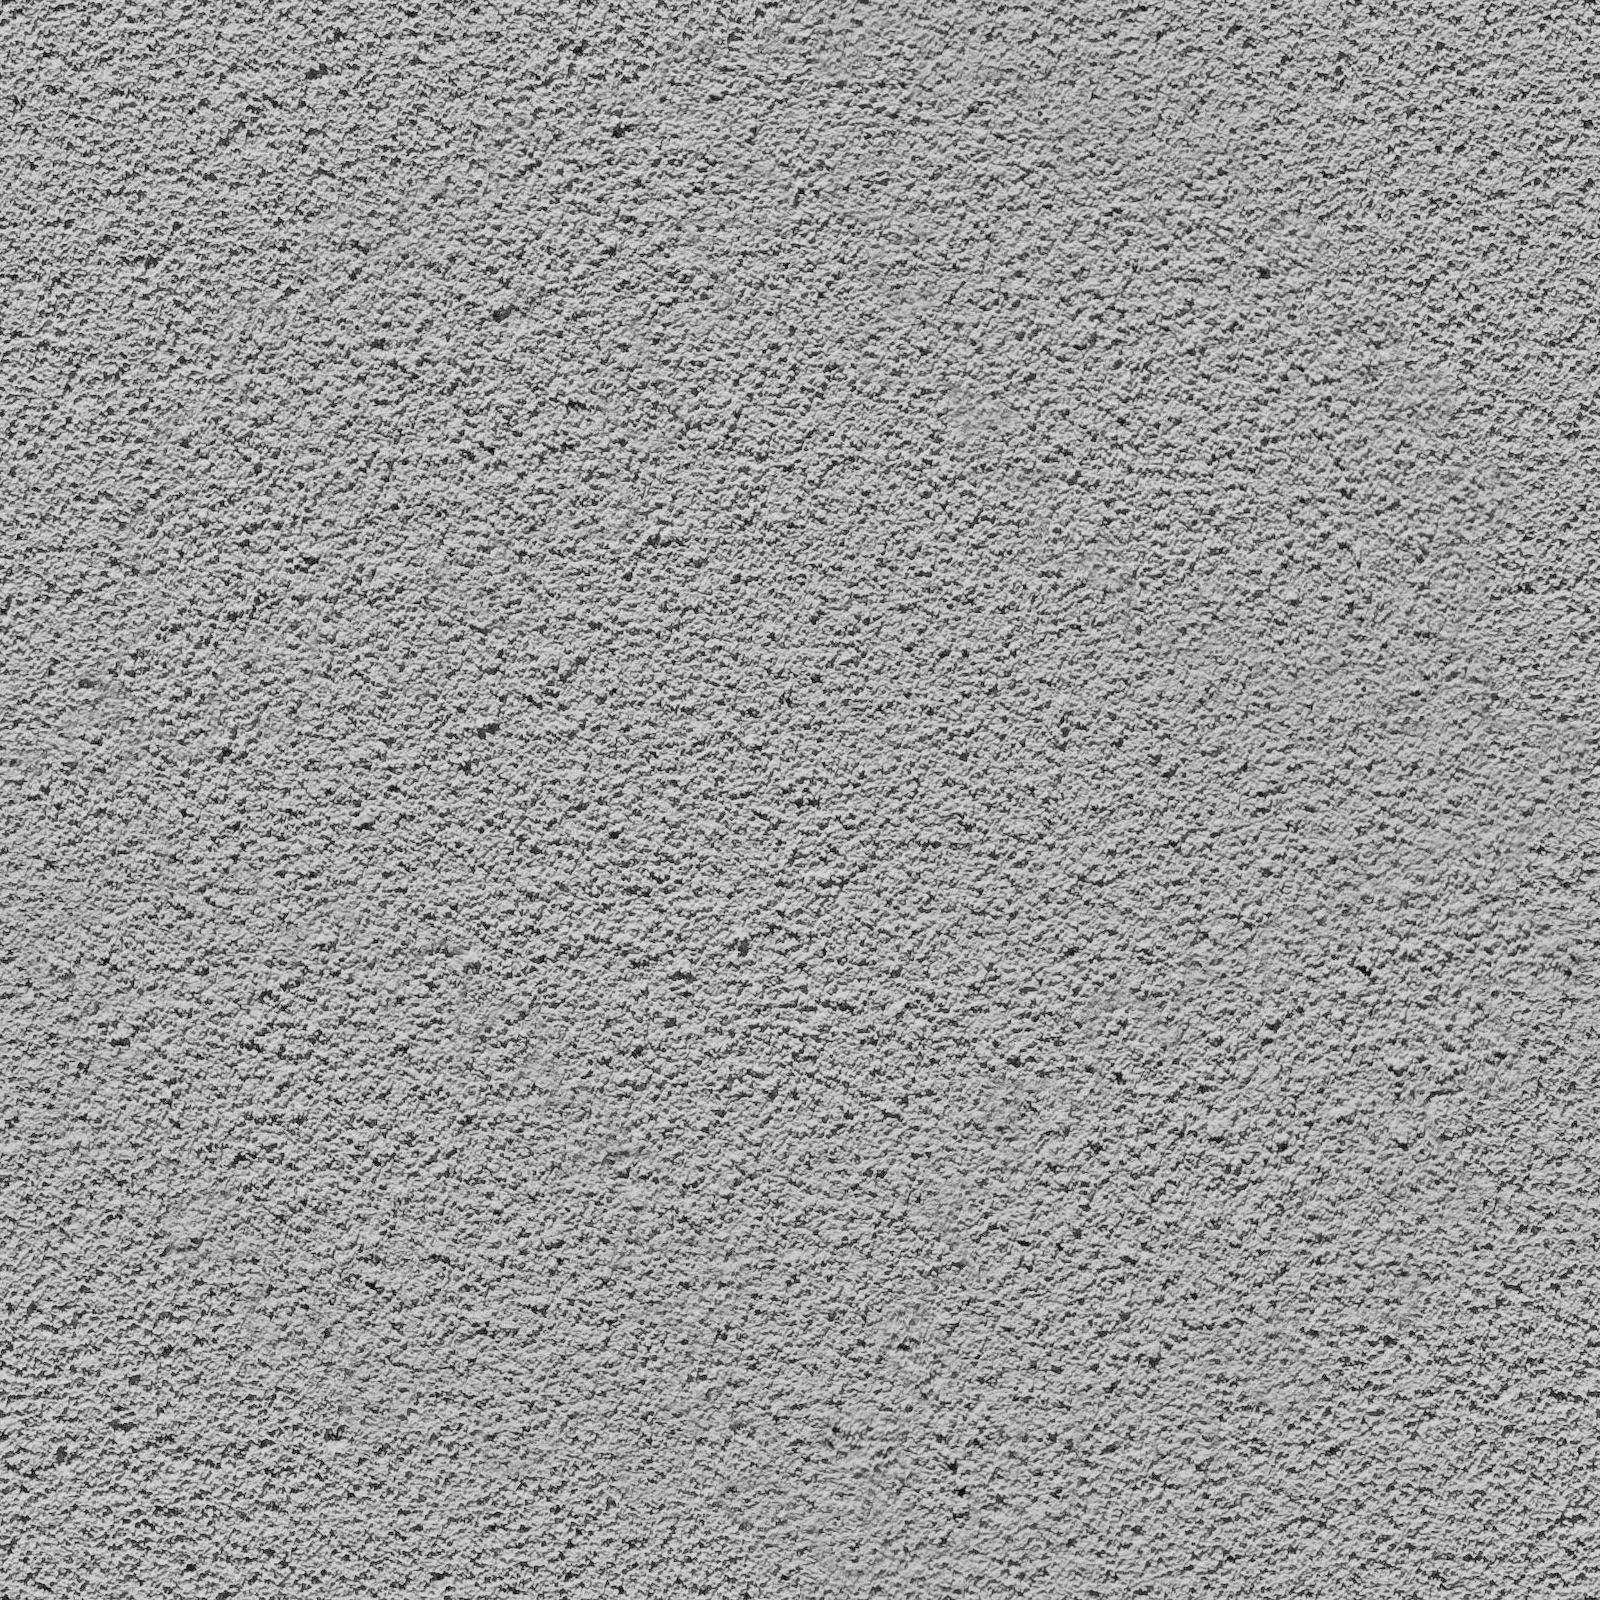 High Resolution Textures Stucco